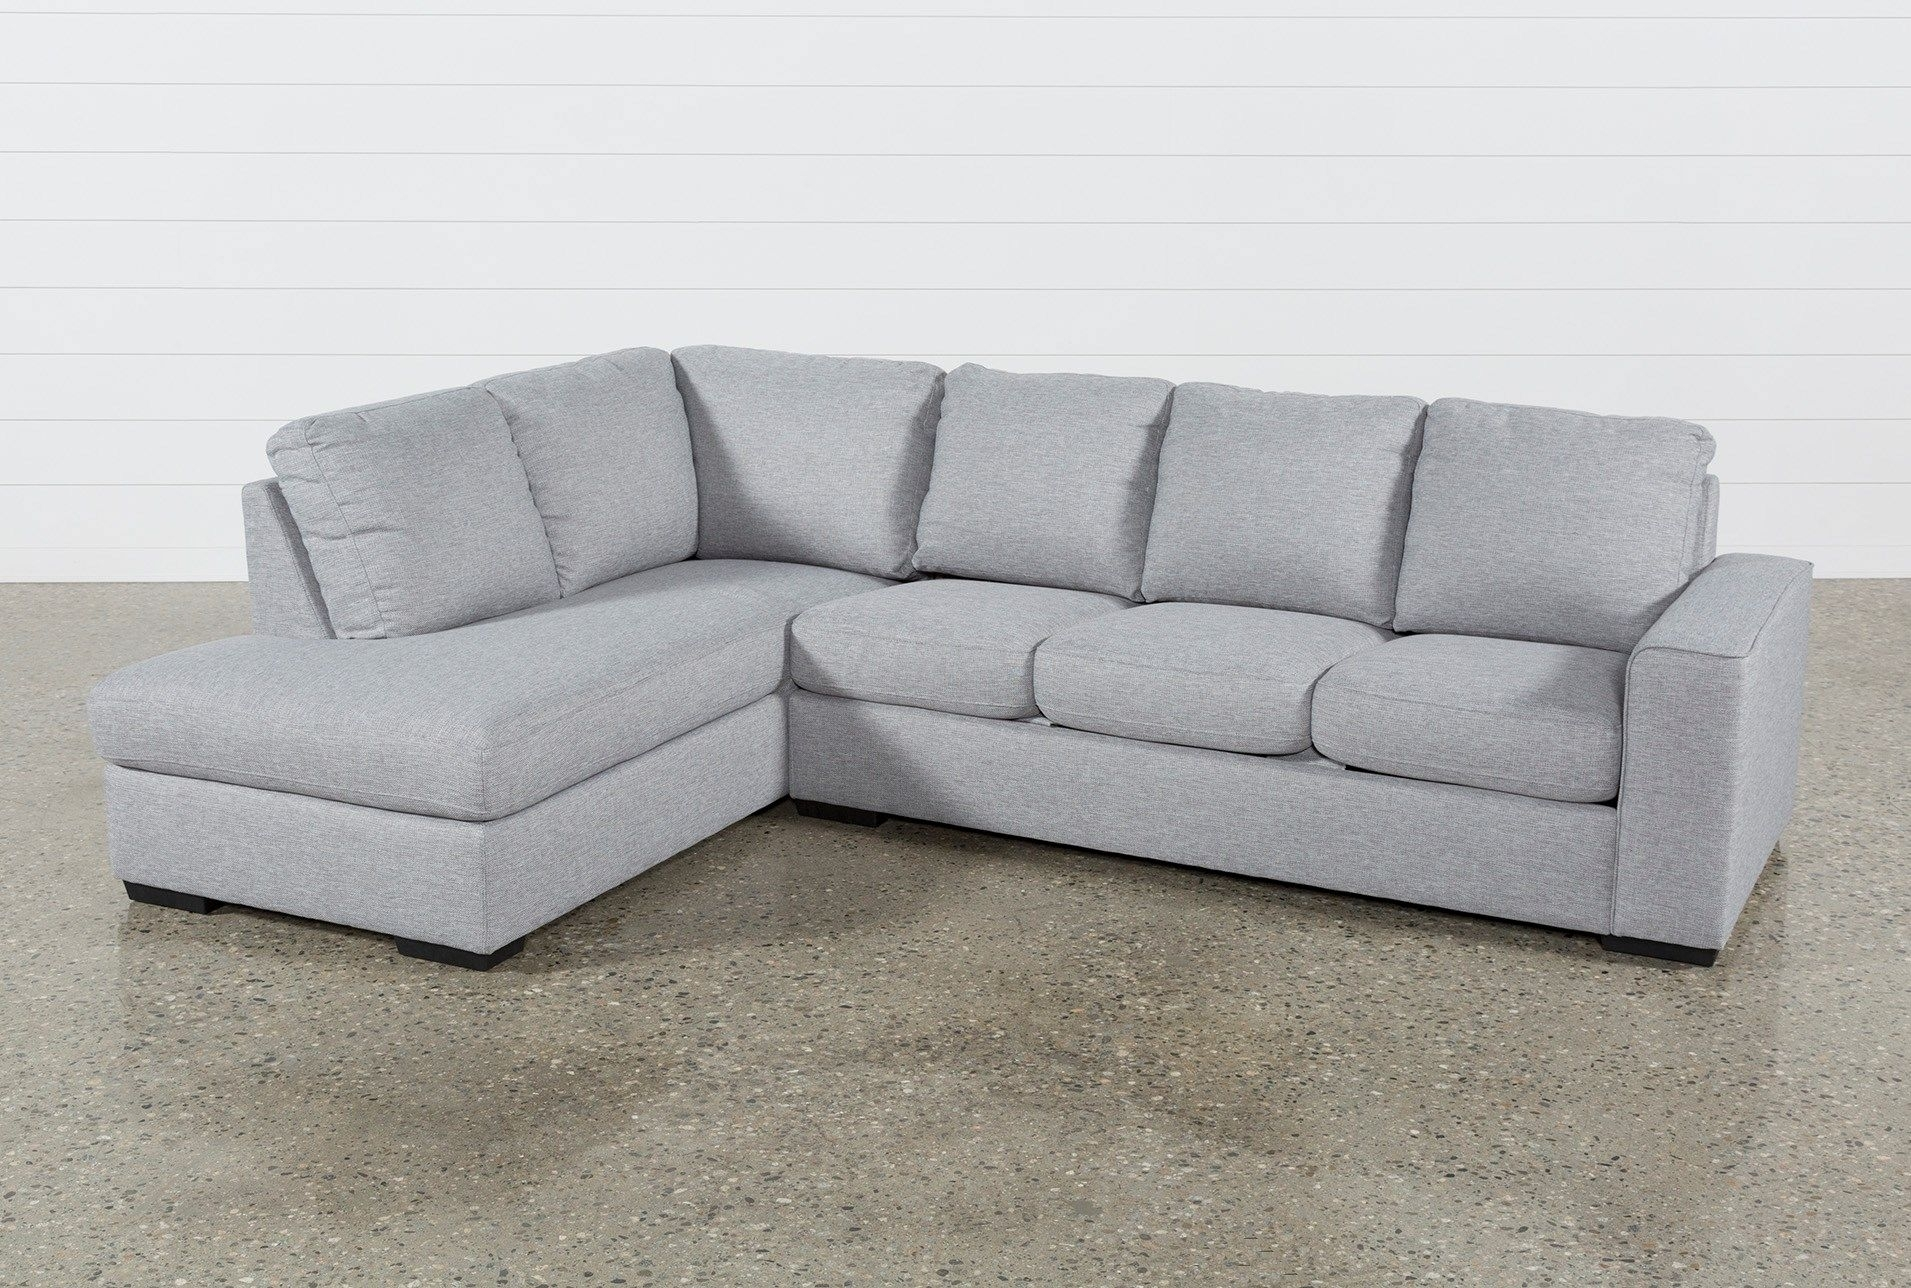 Lucy Grey 2 Piece Sectional W/laf Chaise | Tx House | Pinterest Throughout Lucy Dark Grey 2 Piece Sectionals With Raf Chaise (View 5 of 25)